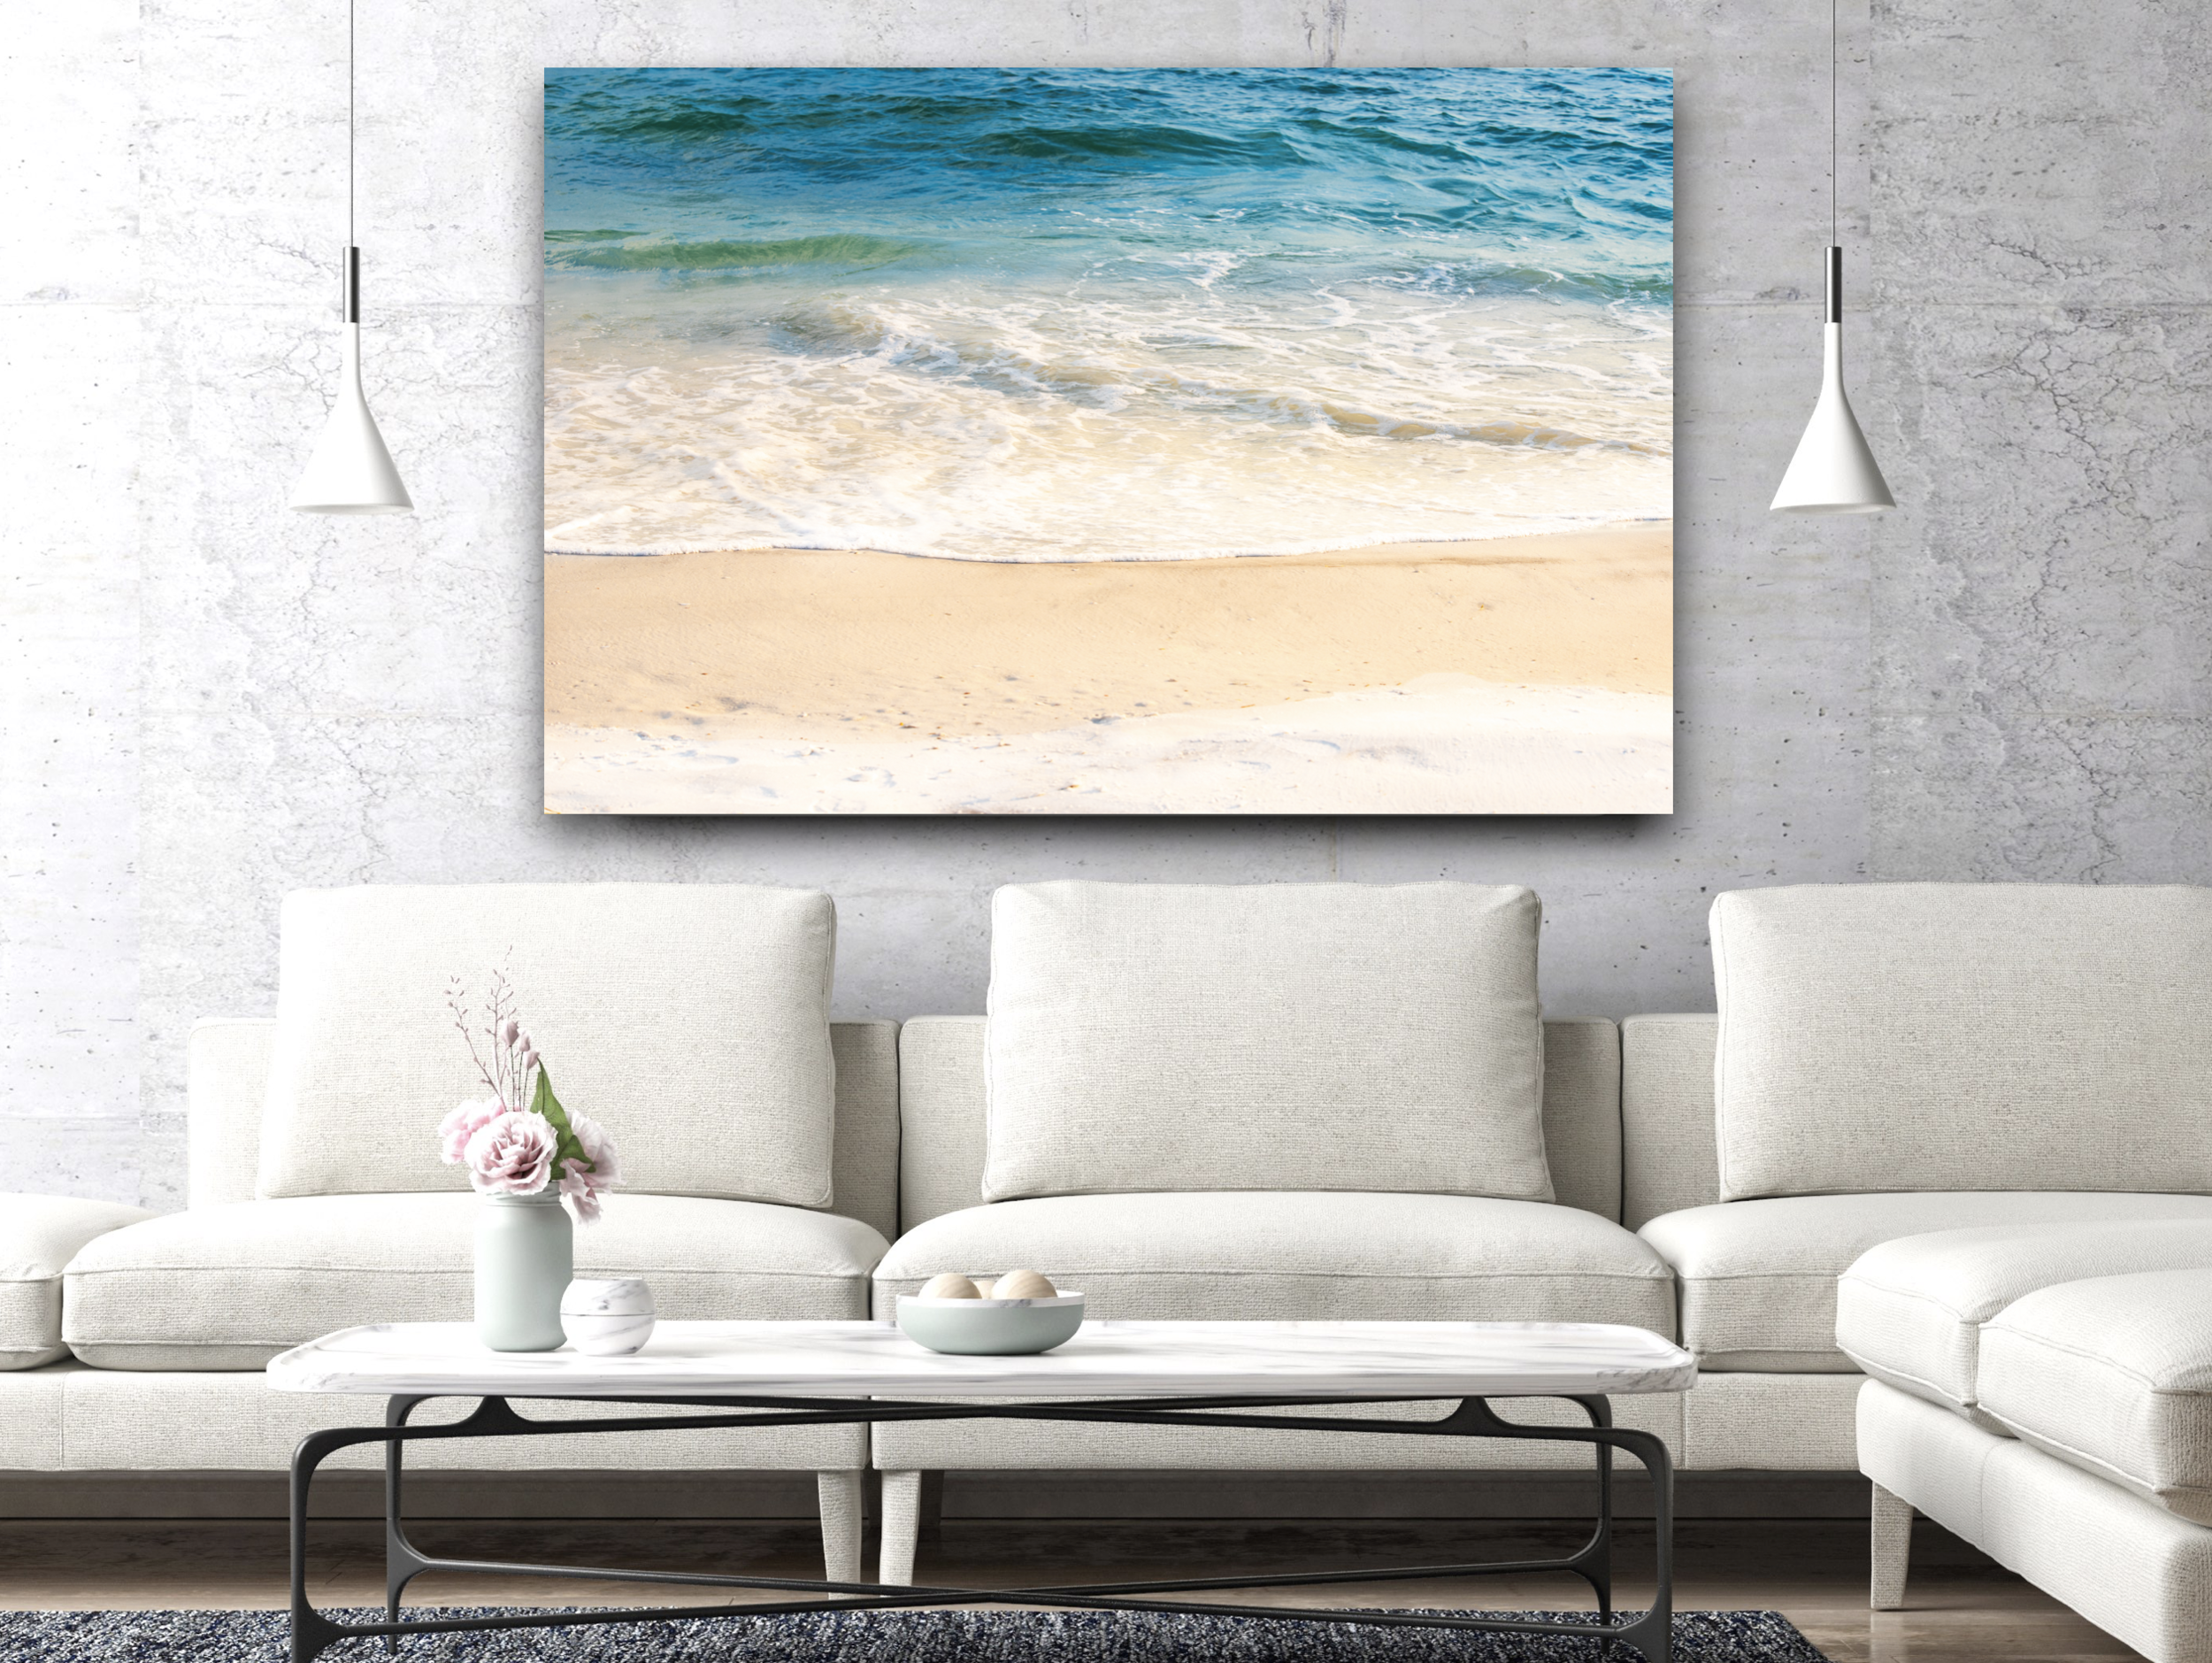 Single Panel Ocean Shot Beautiful Artwork Fine Art Mary's Mark Photography.png